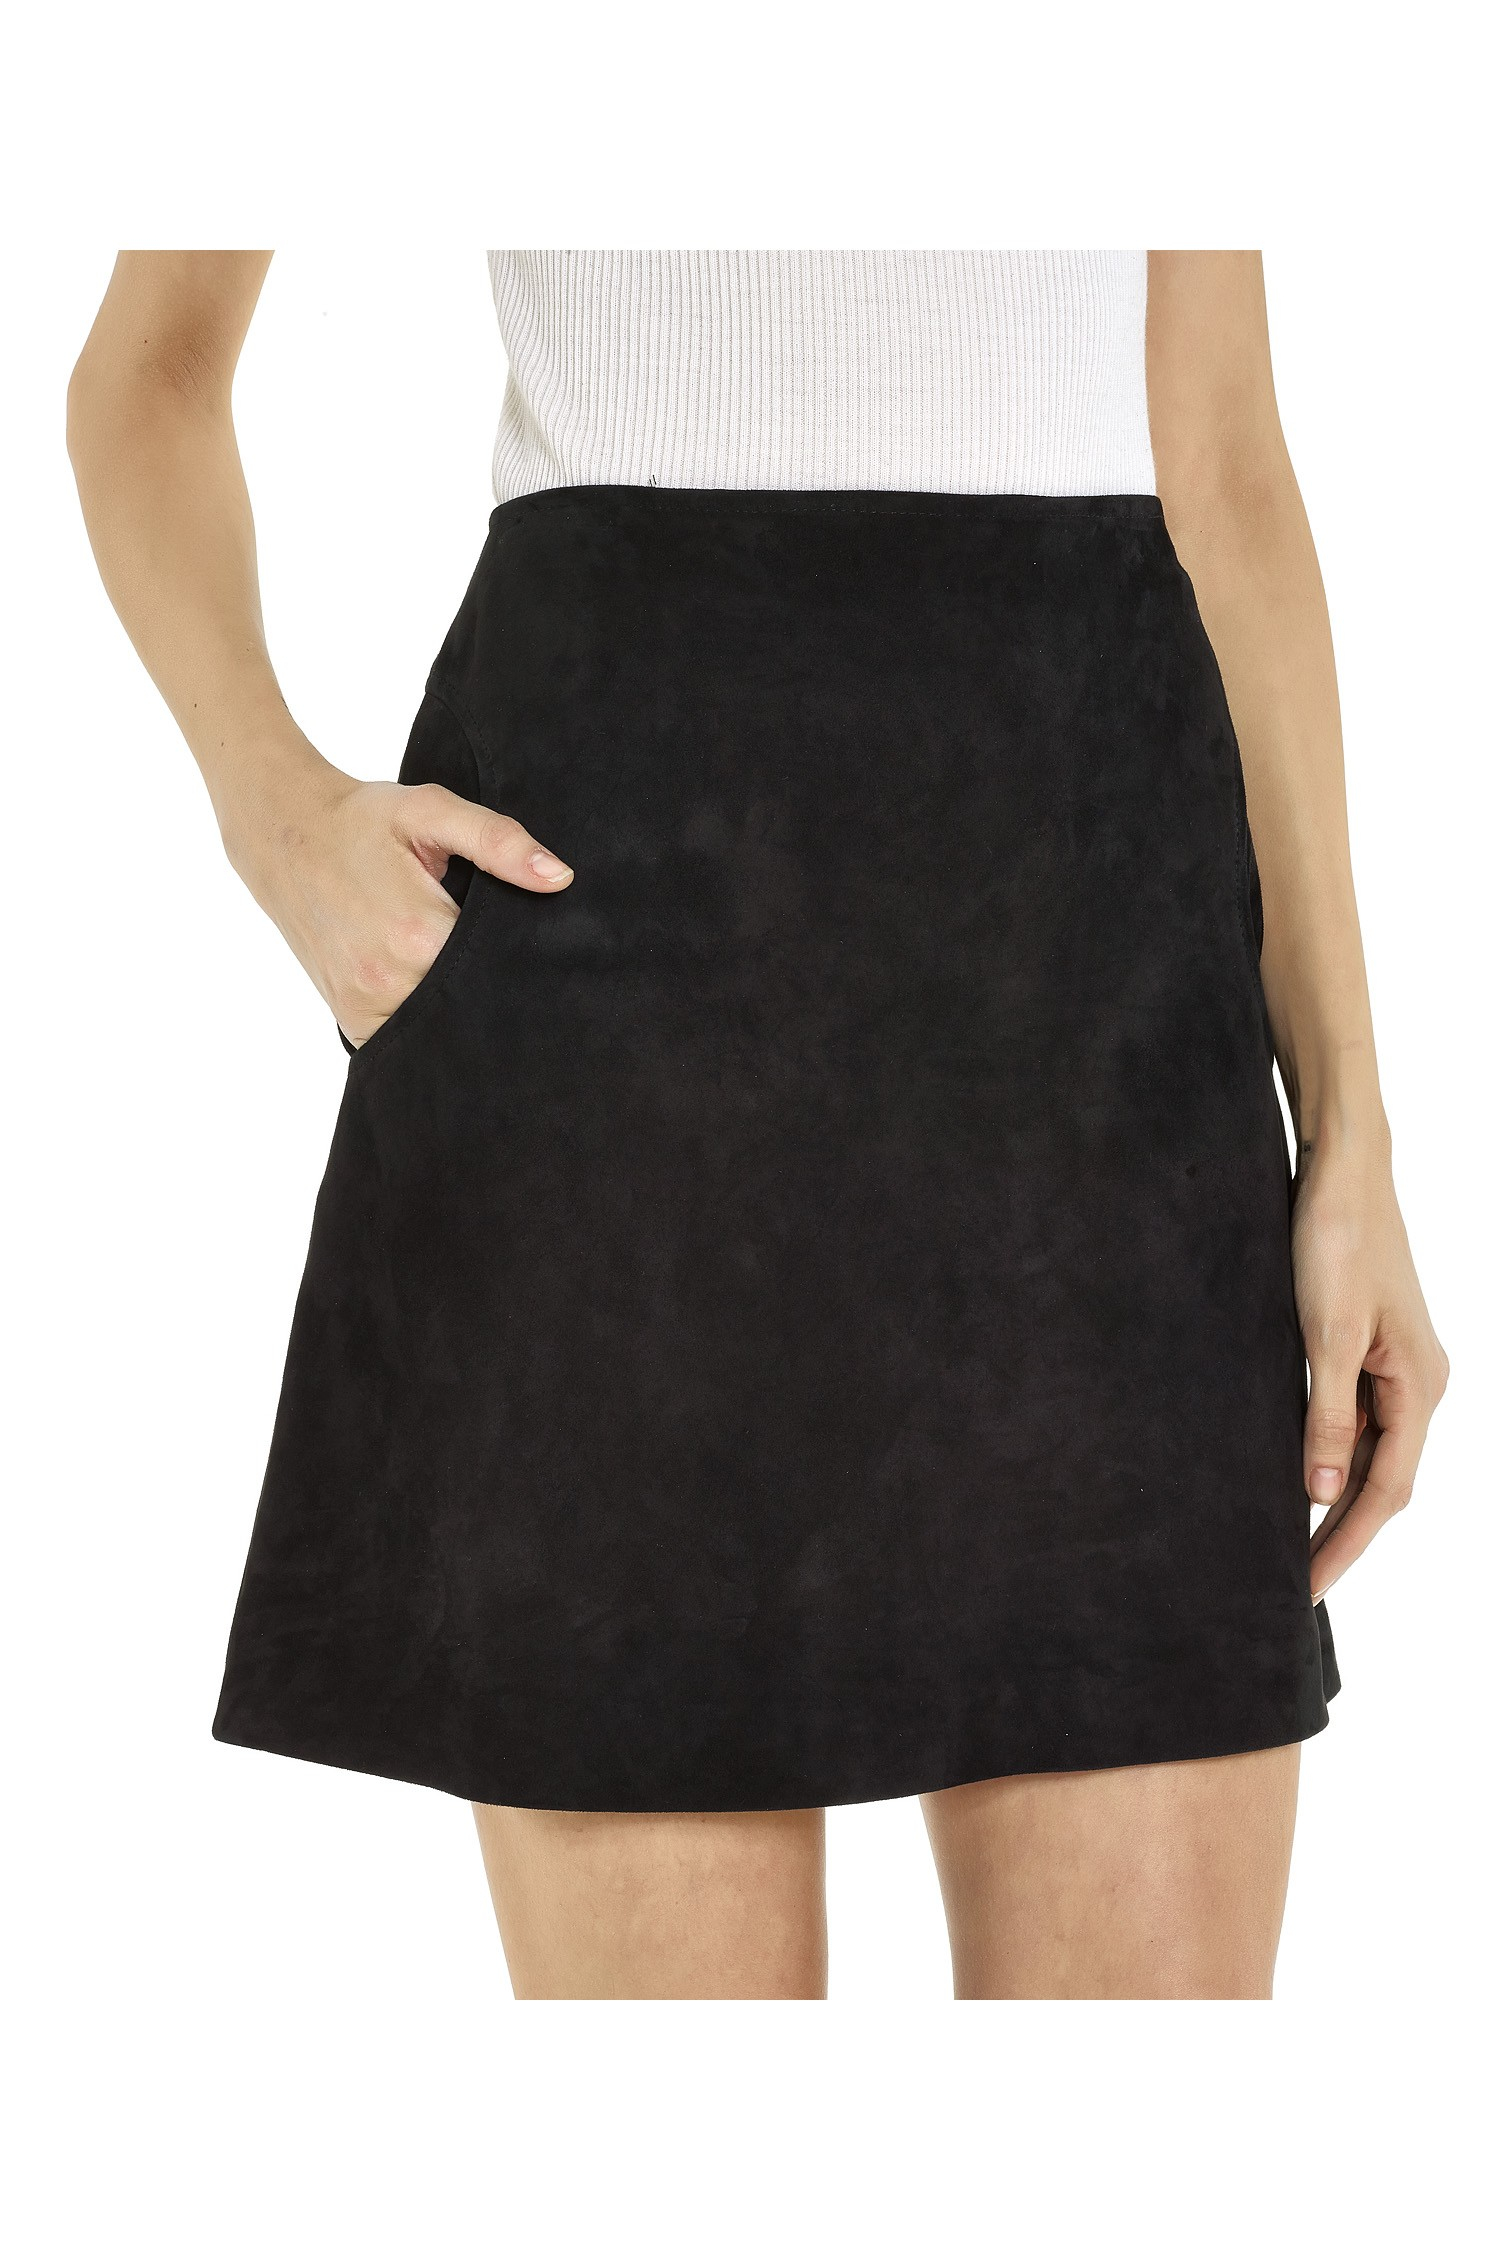 Lisa perry Suede Recess Skirt in Black | Lyst